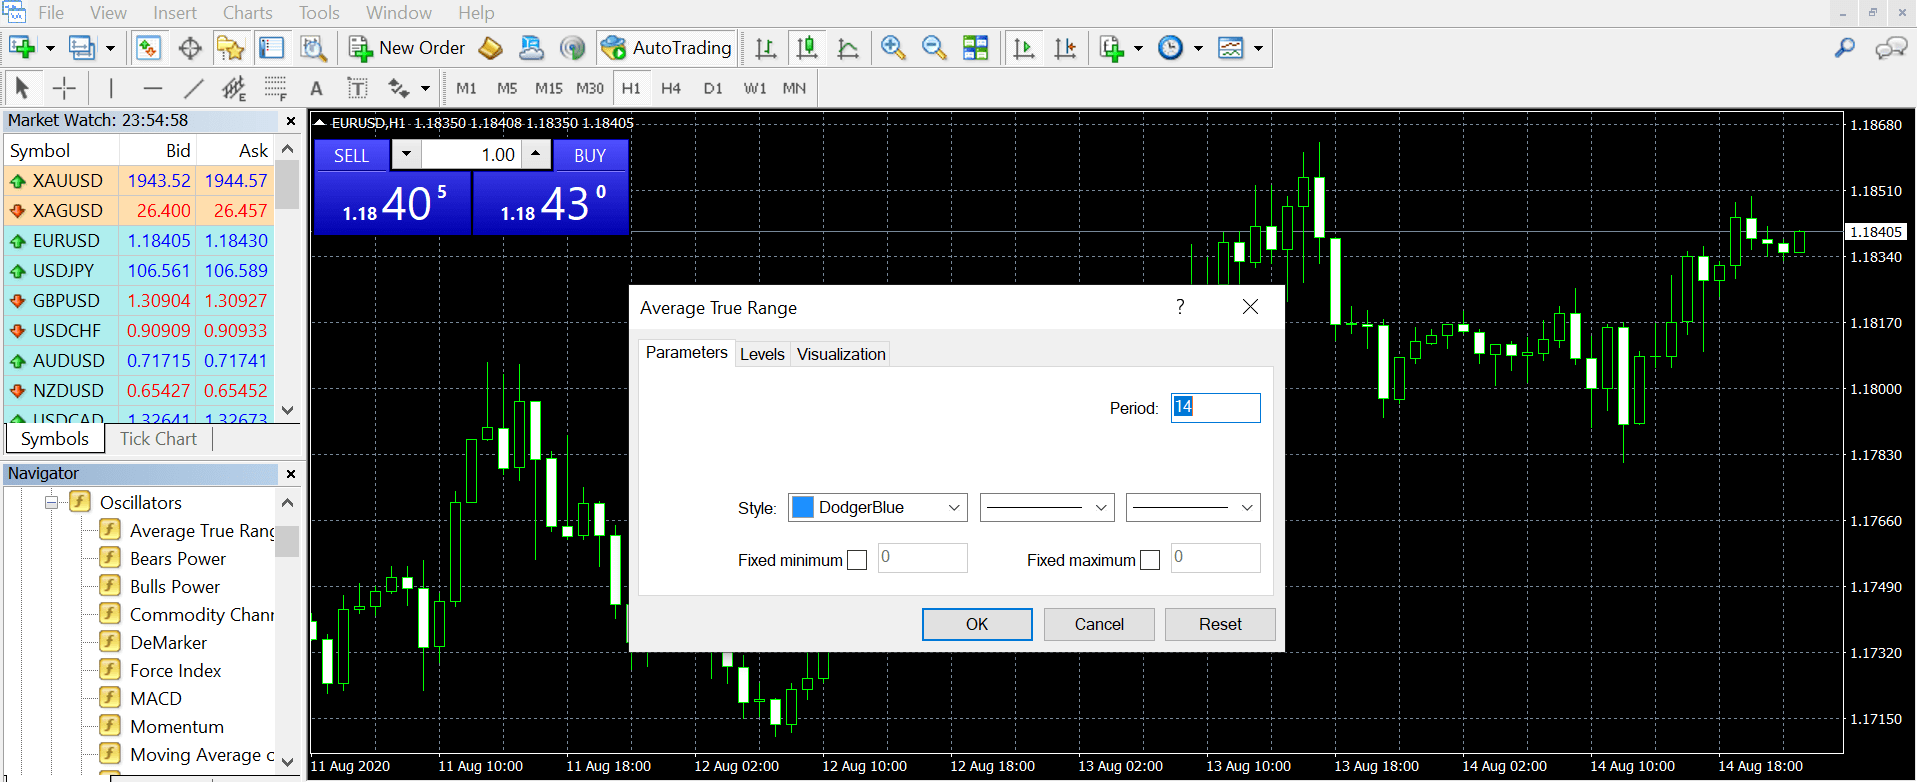 tradingplatforms-metatrader4-whatismt4-and-howtouseit-trading-indicator-dragged-ontomt4-image